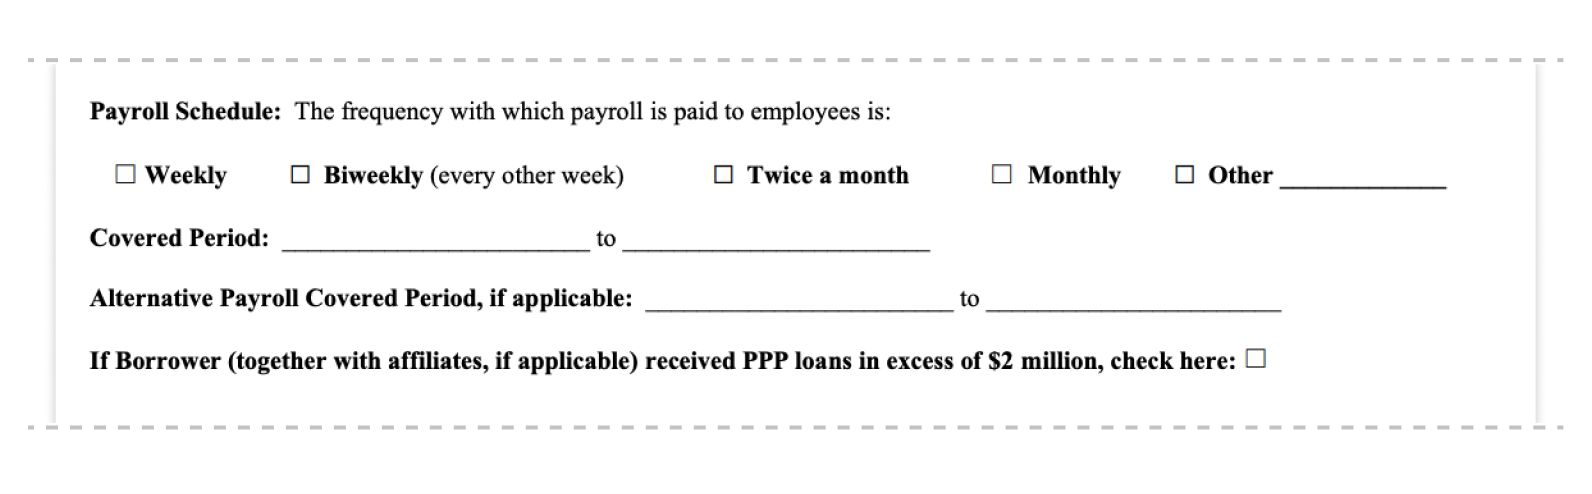 ppp loan forgiveness application form 3508EZ payroll schedule